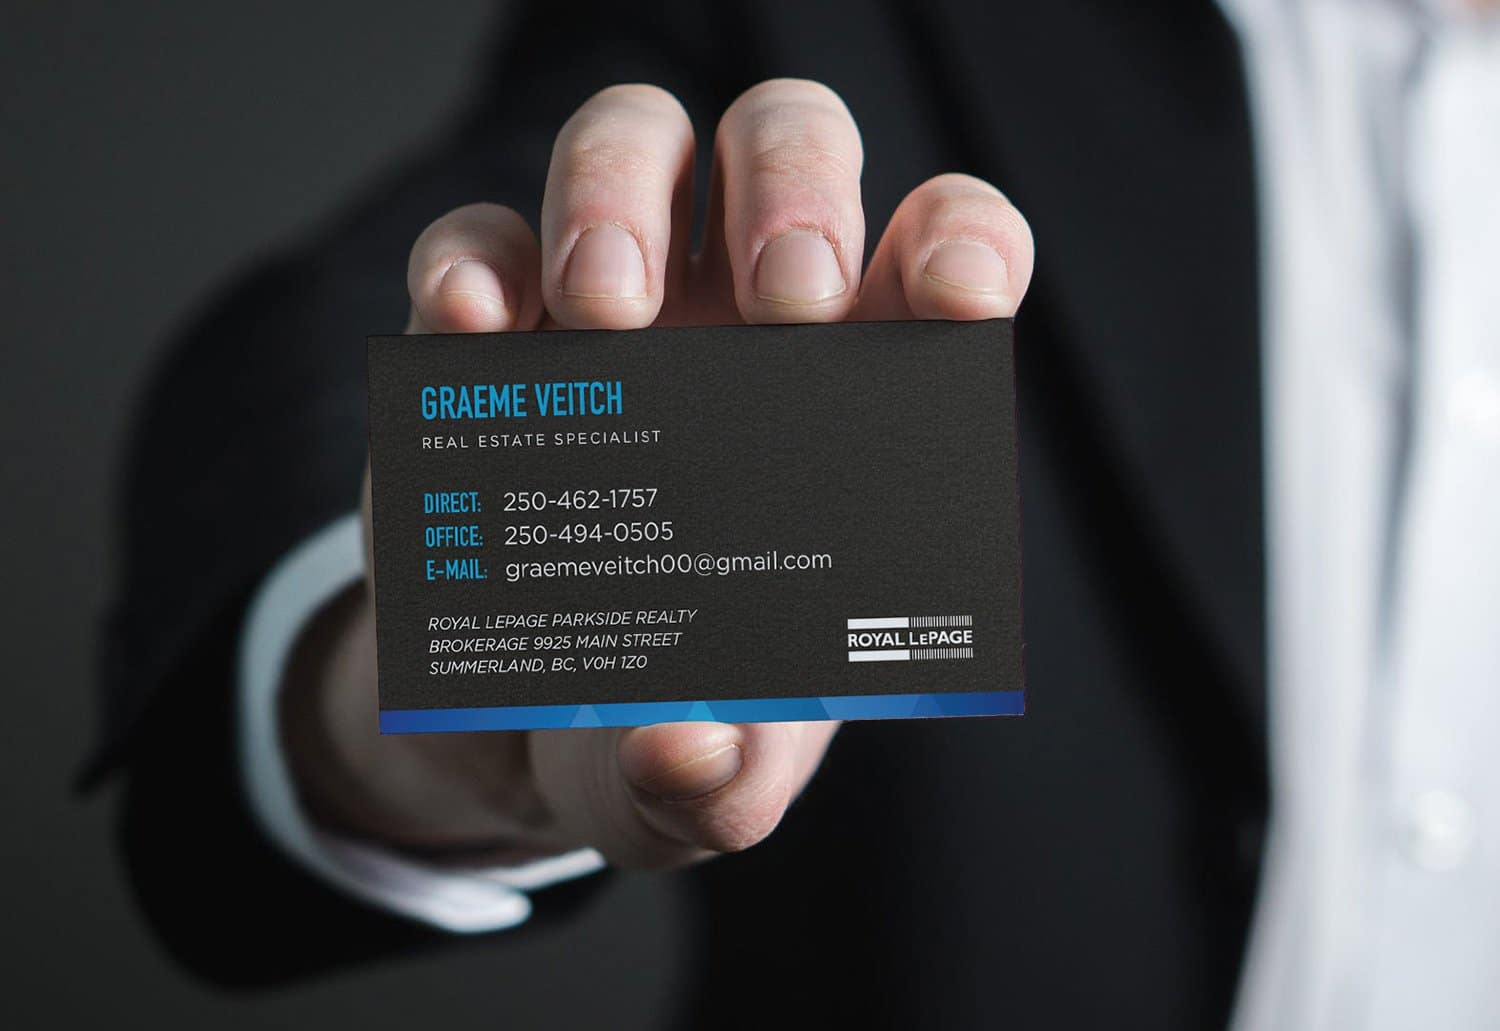 6. Why custom Business Cards are extremely important in Real Estate